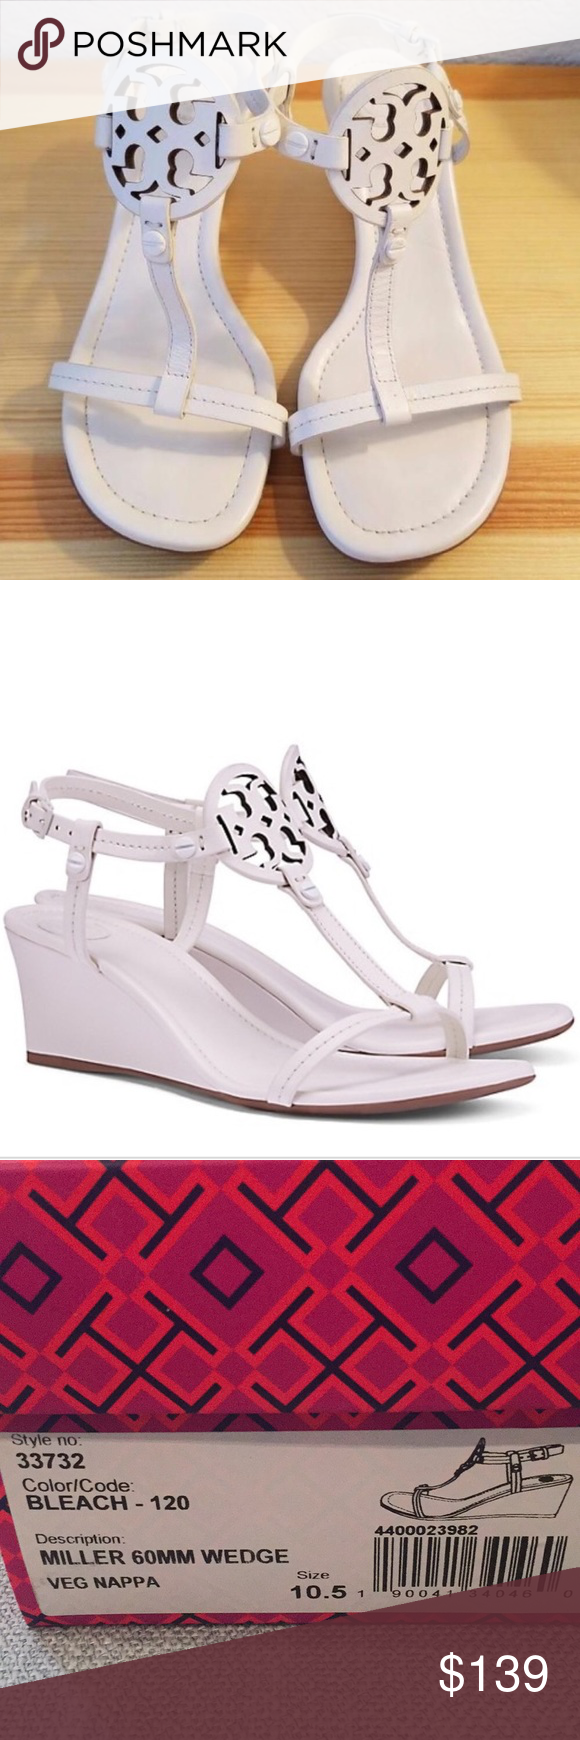 be7179f40253 NWT Tory Burch Miller wedge Classic Tory Burch Miller color bleach. Sz  10.5. New in box with shoe bag. Tory Burch Shoes Sandals